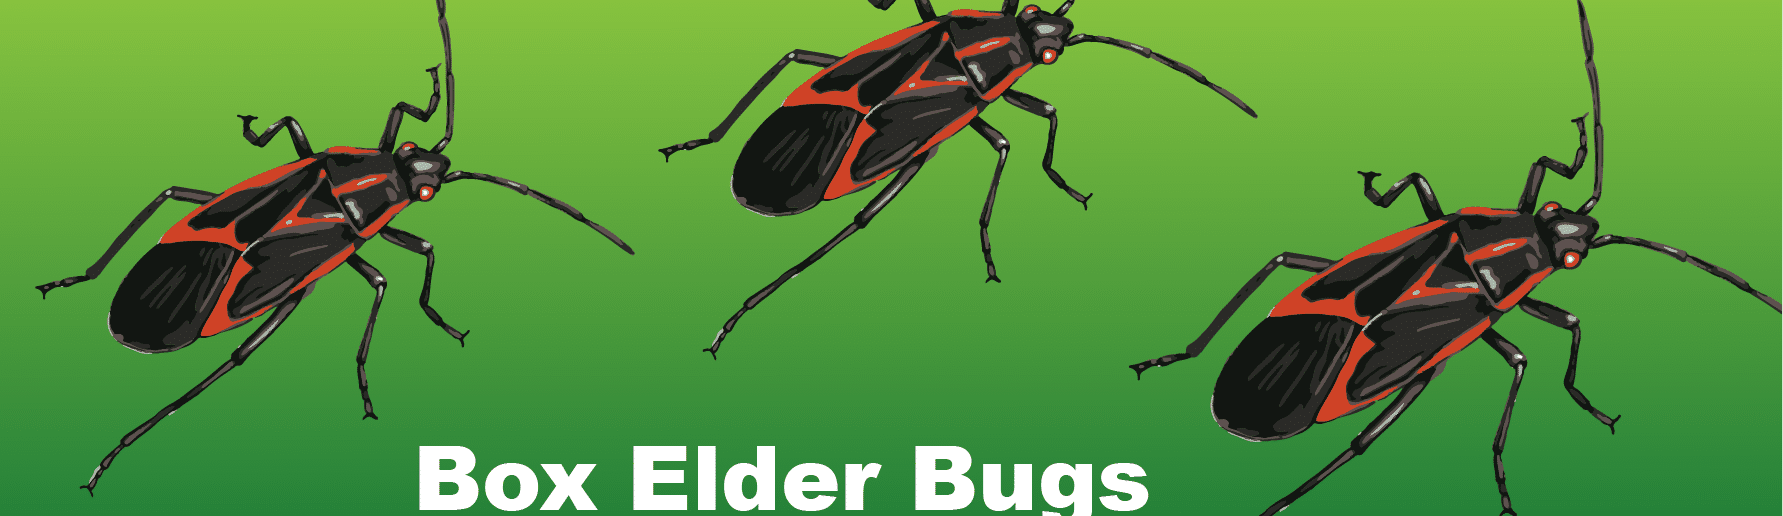 box elder bugs infographic header